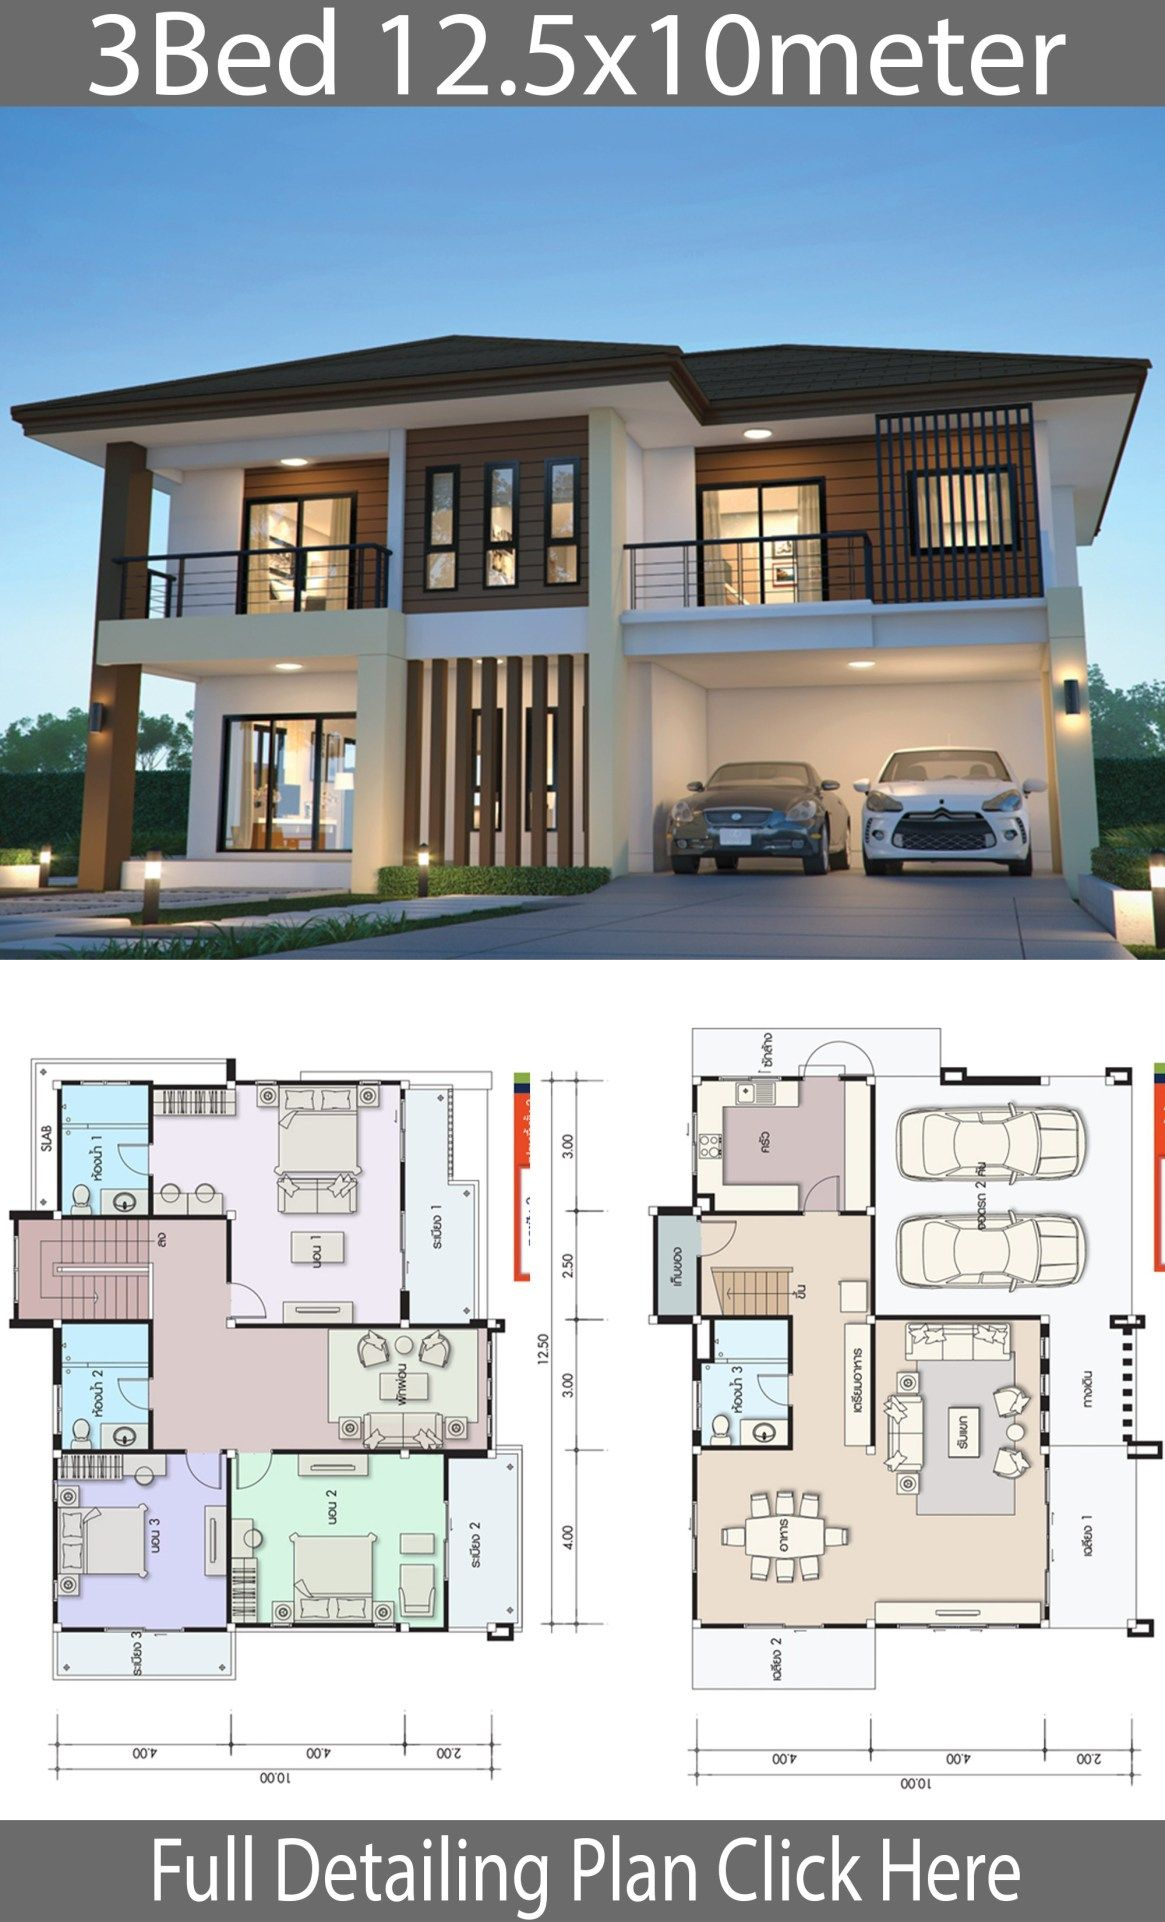 House design 12.5x10m with 3 bedrooms